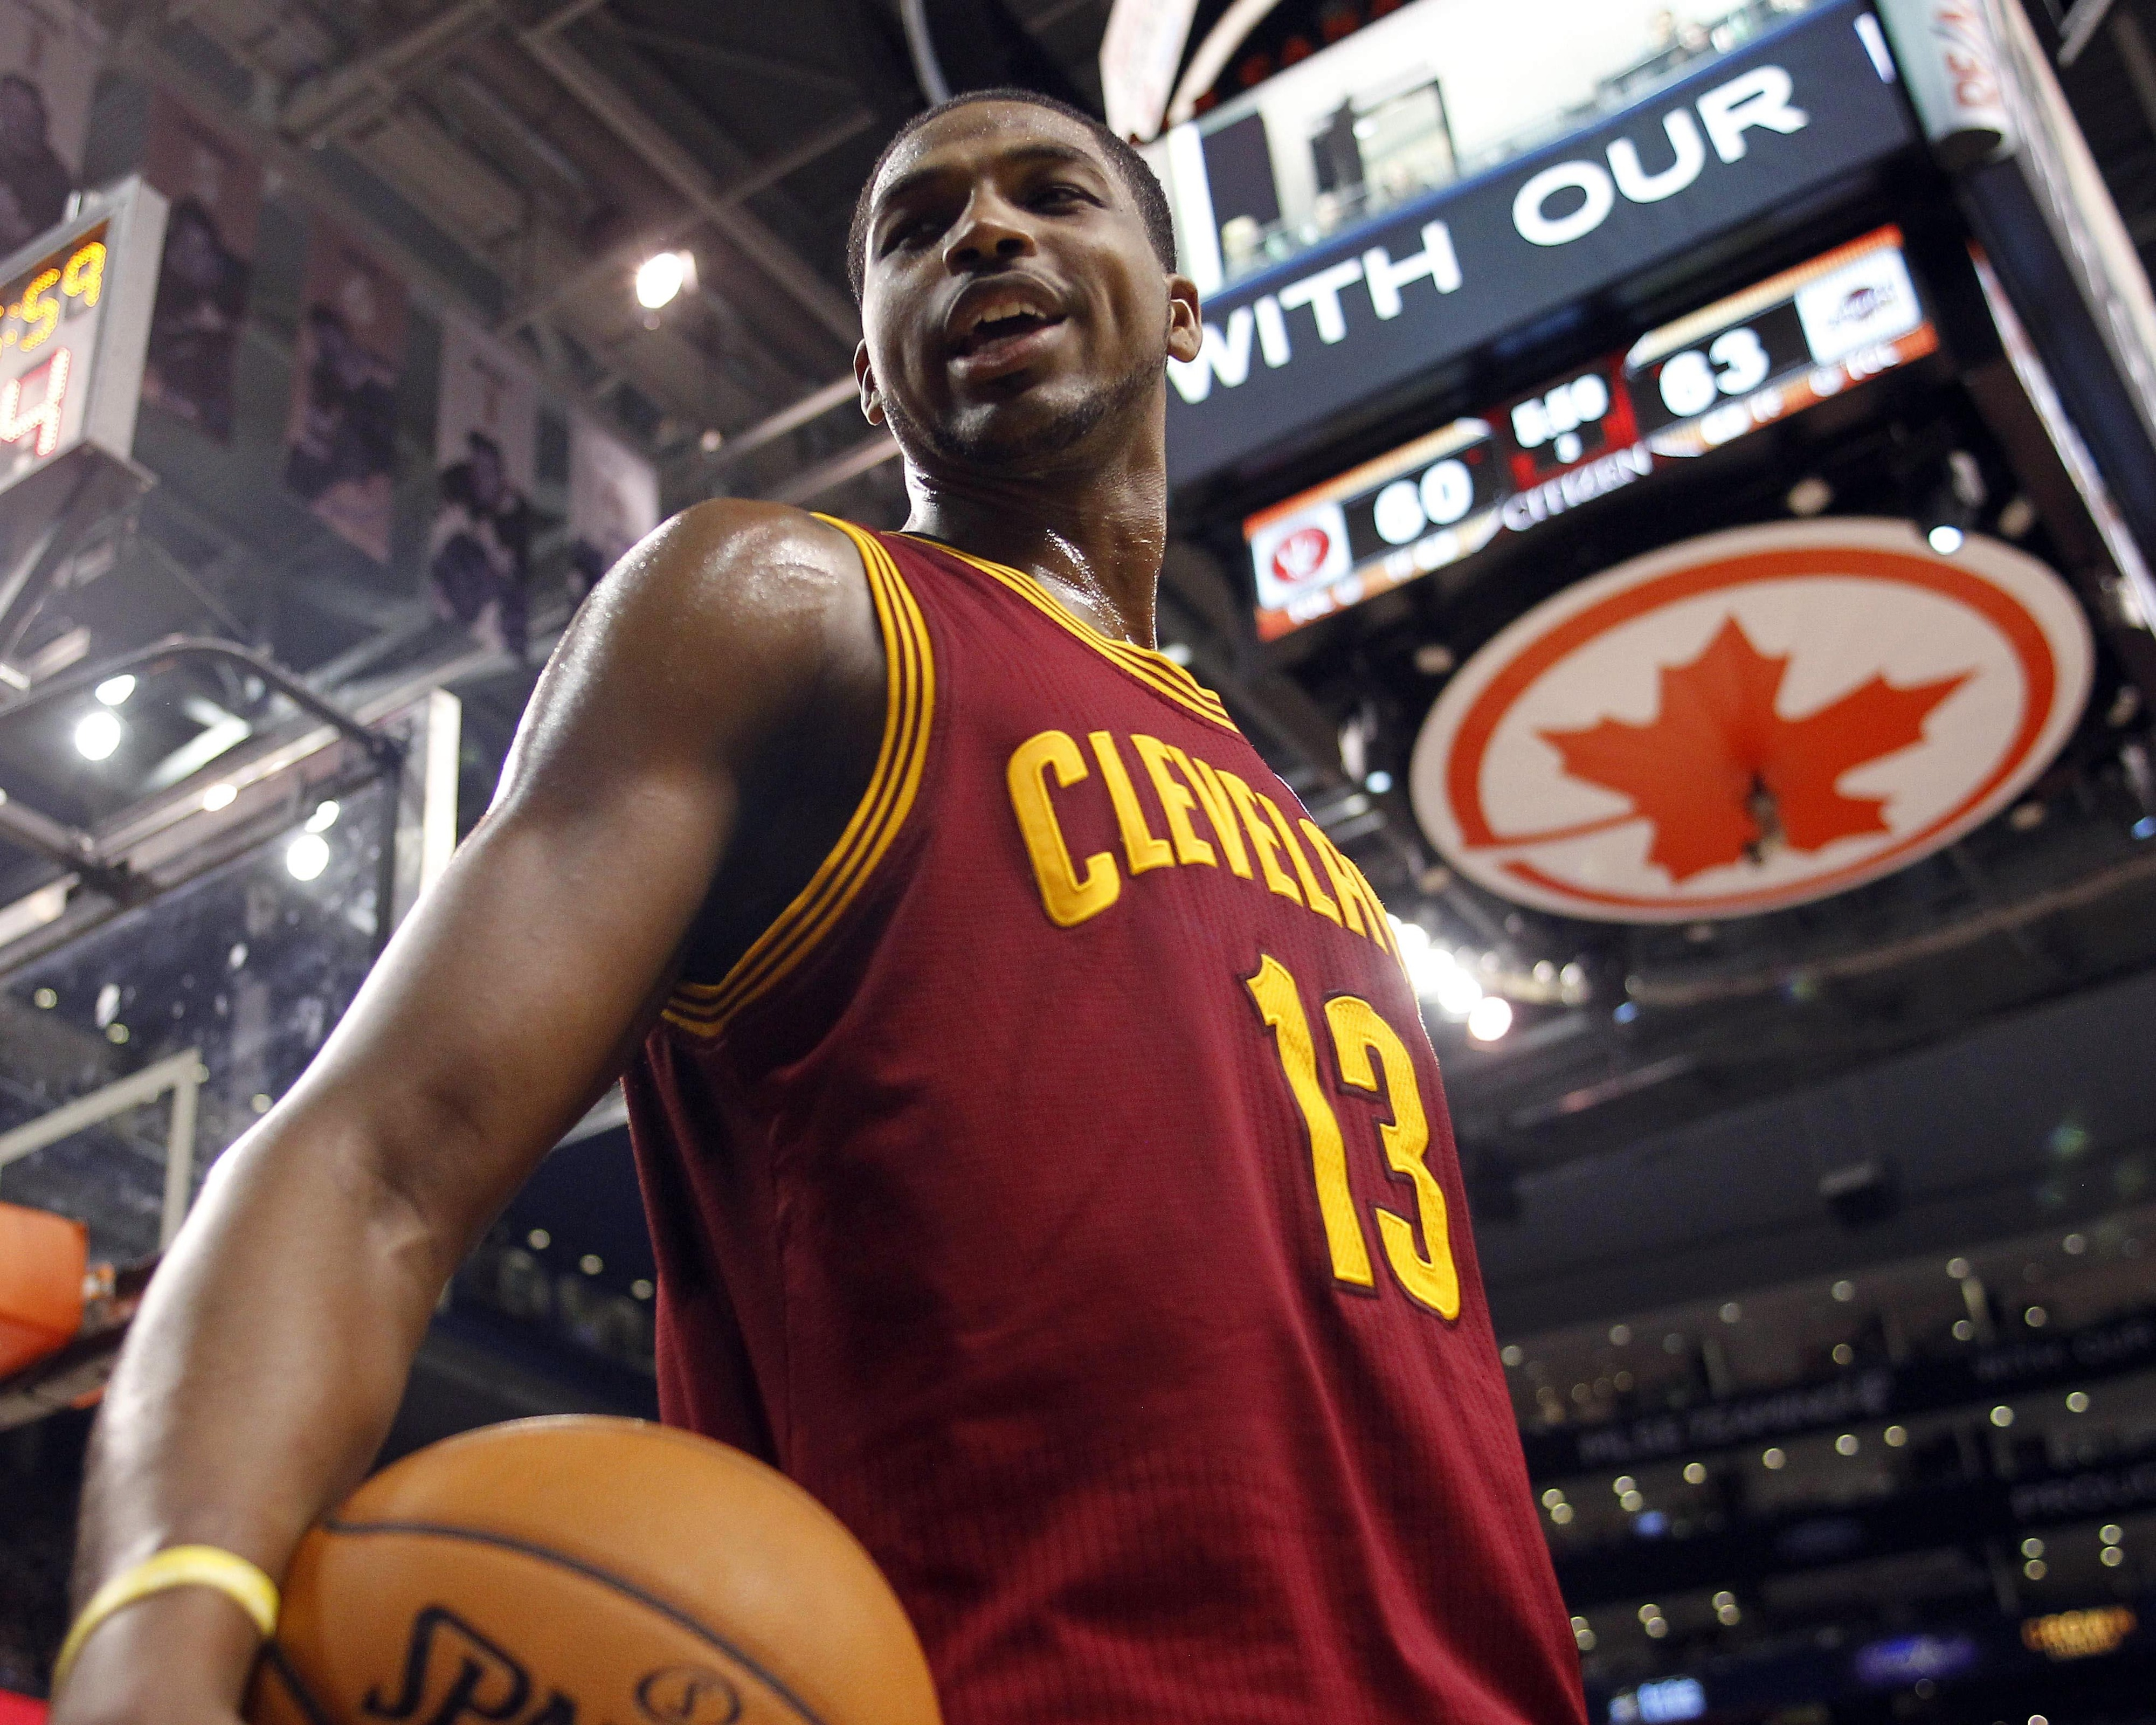 Like ODB, Tristan Thompson is all about the children ...